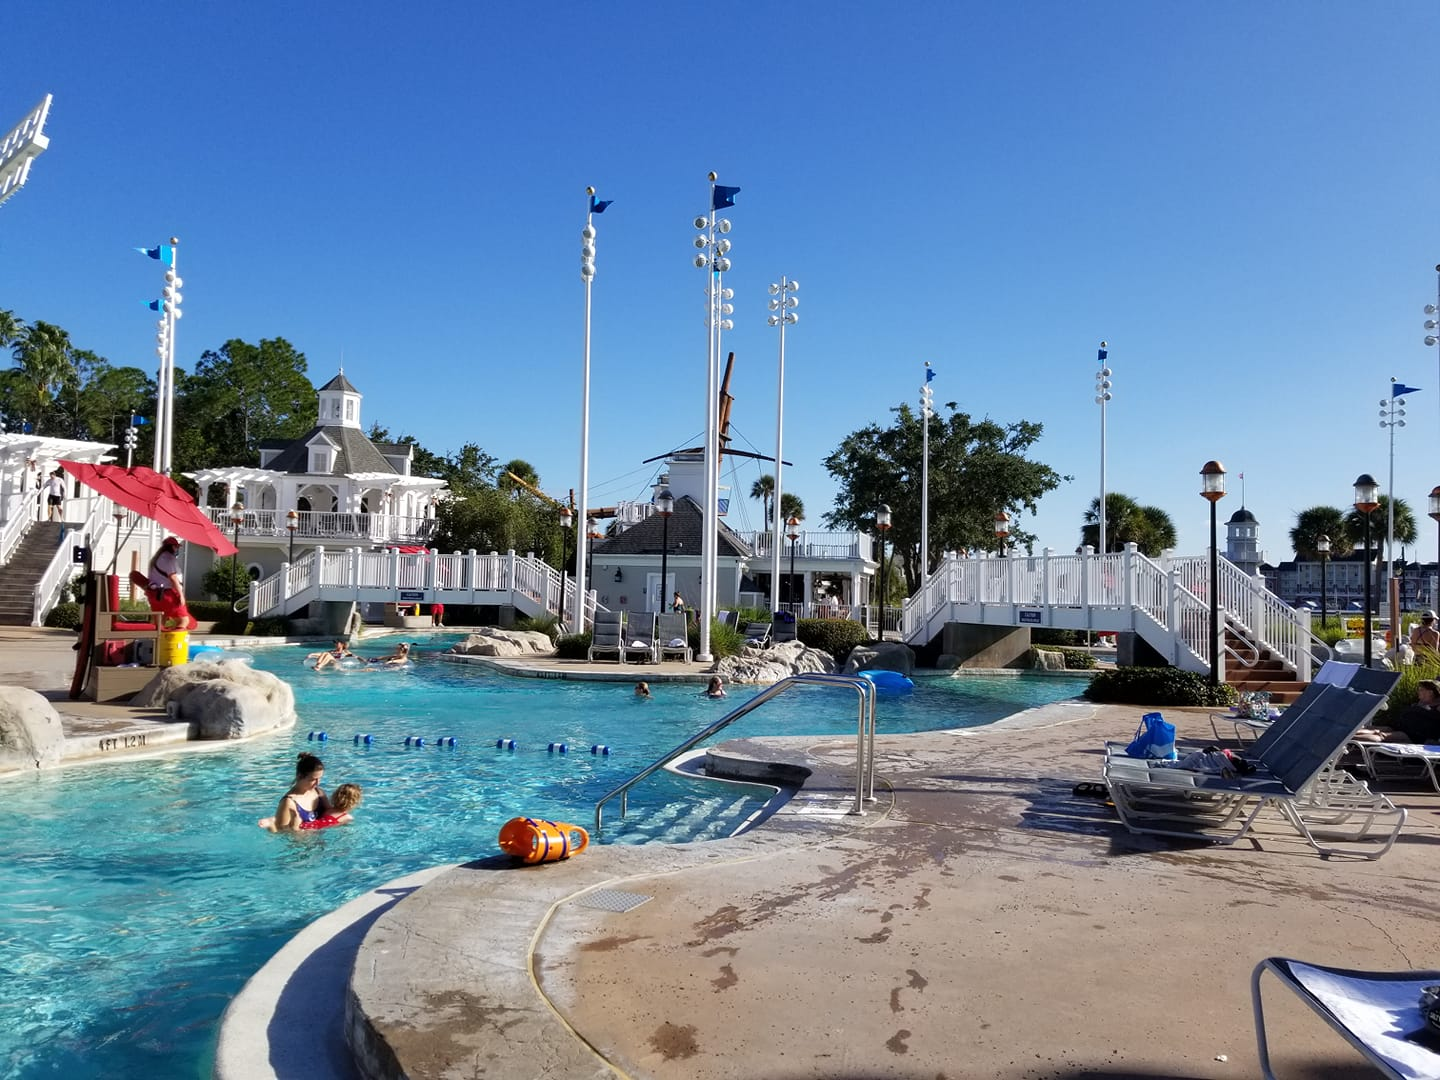 Stormalong Bay at Disney's Beach Club and Yacht Club Resorts